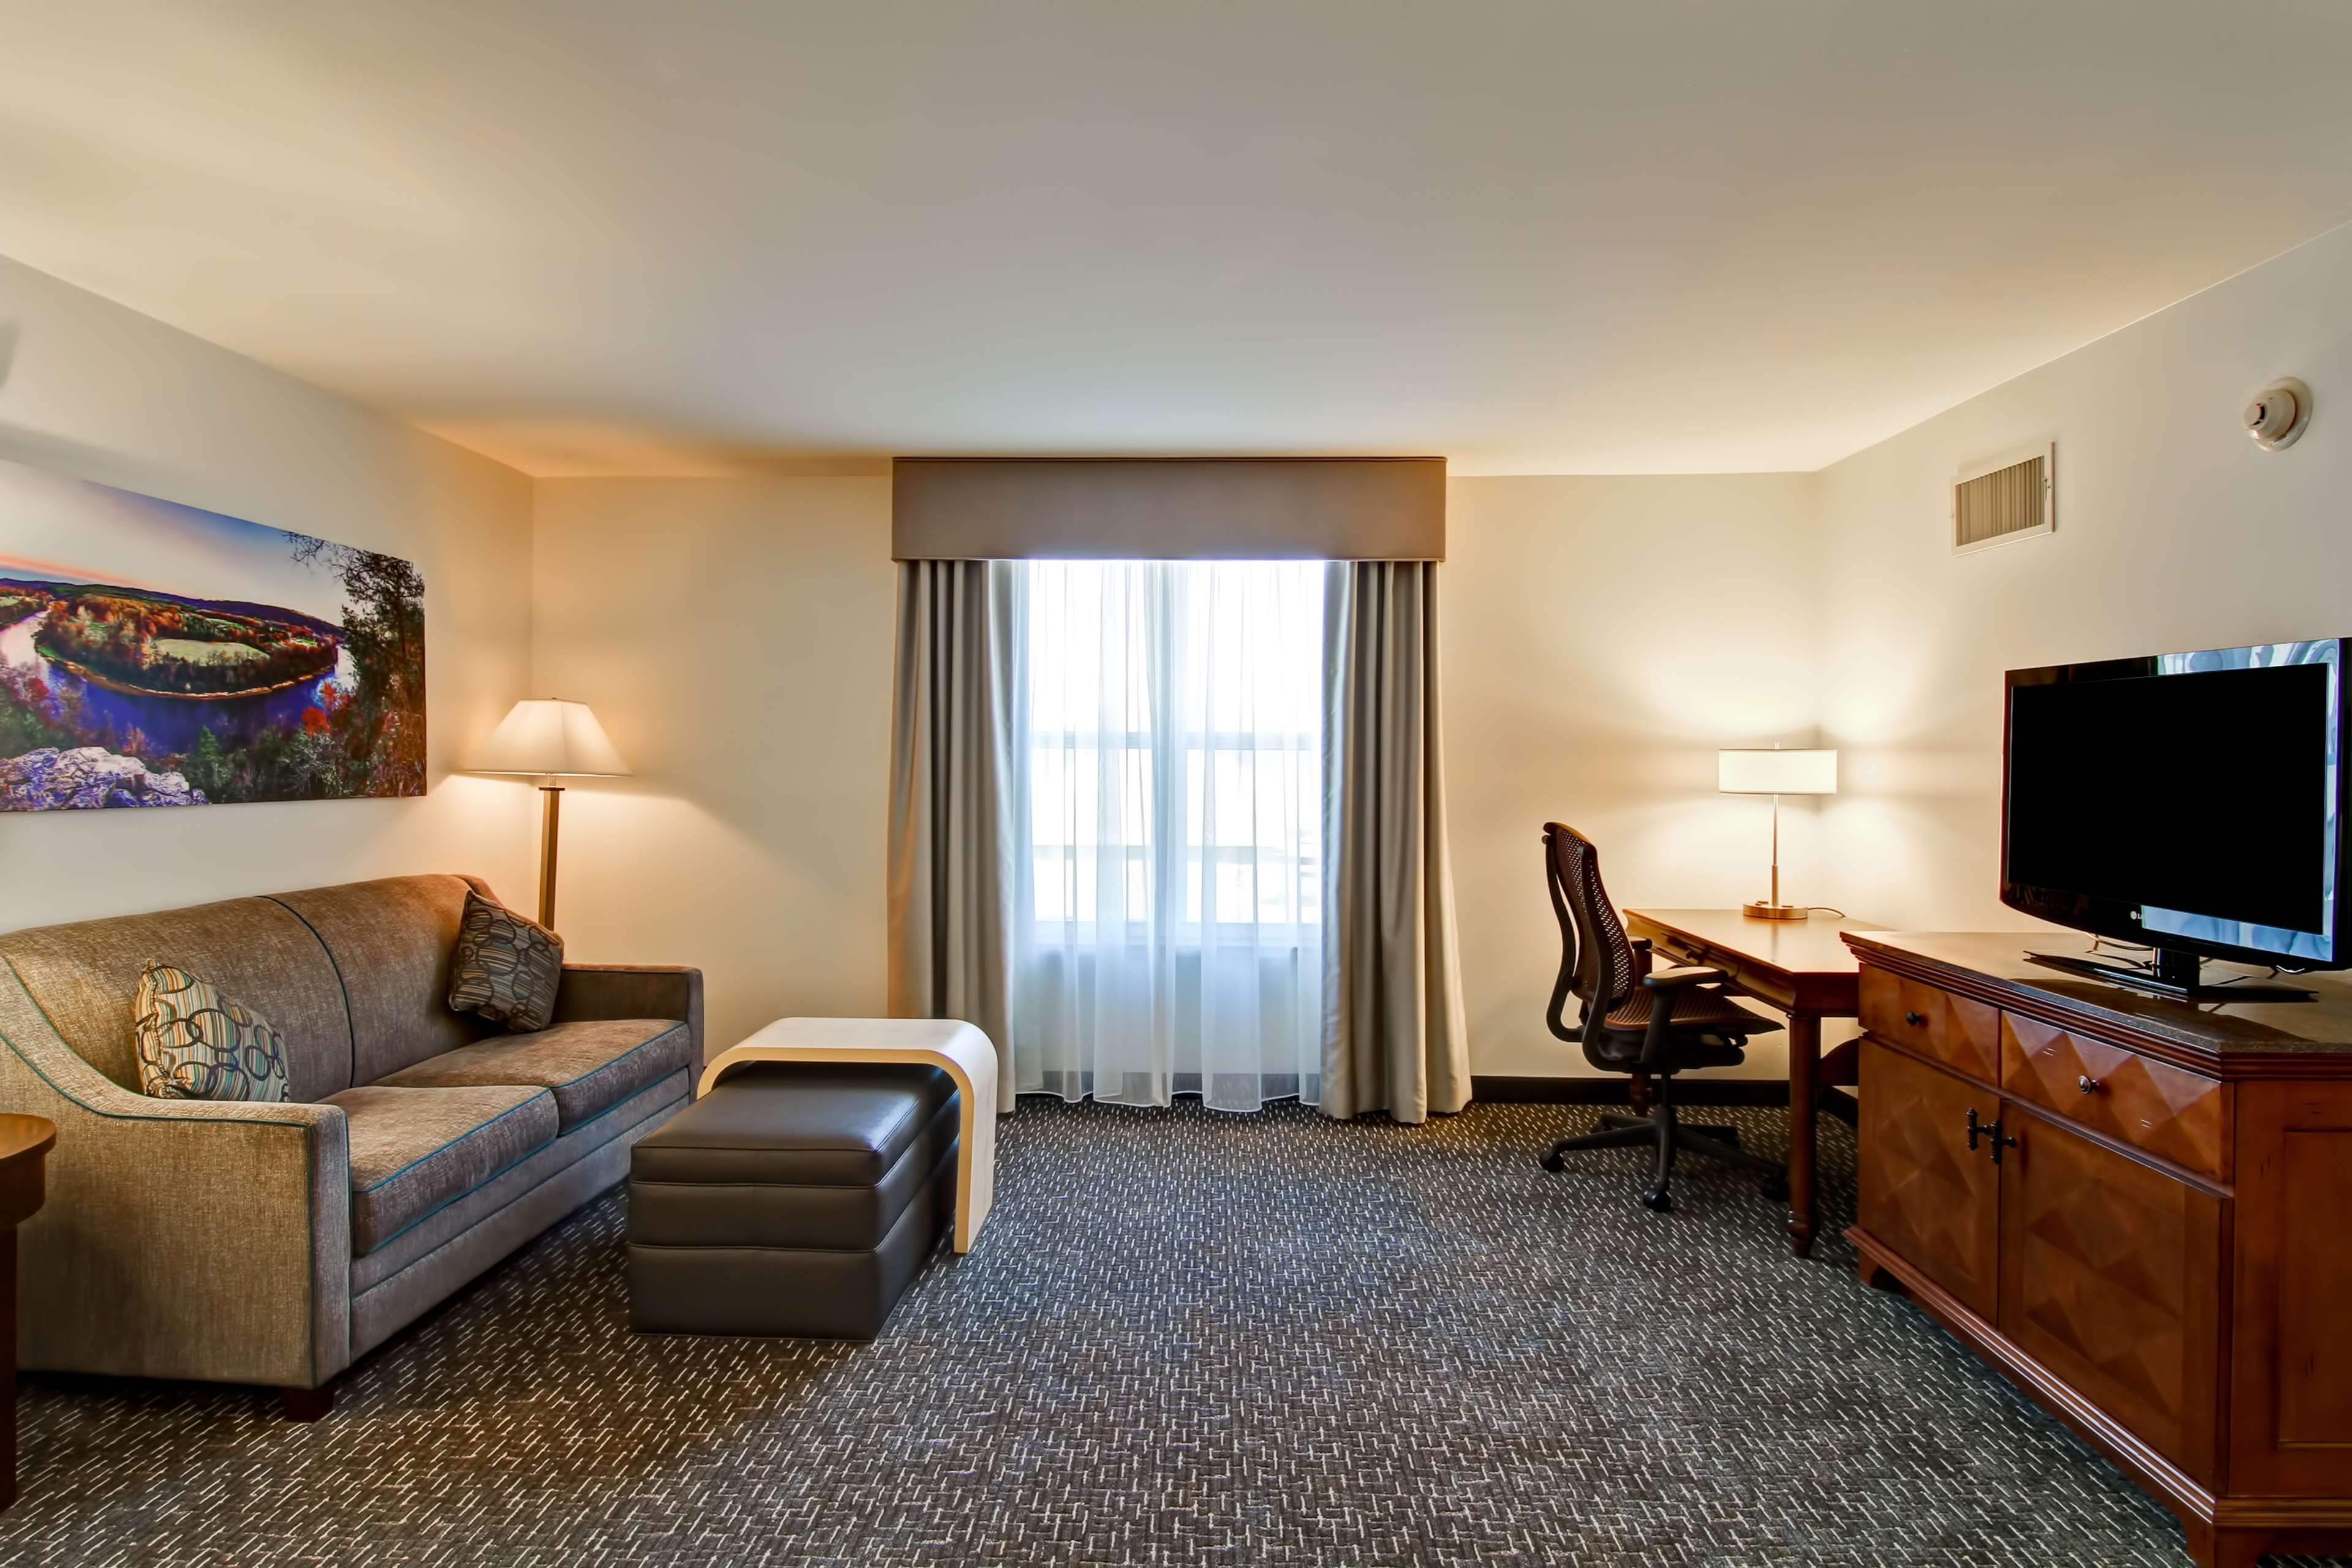 Homewood Suites by Hilton Bentonville-Rogers image 24